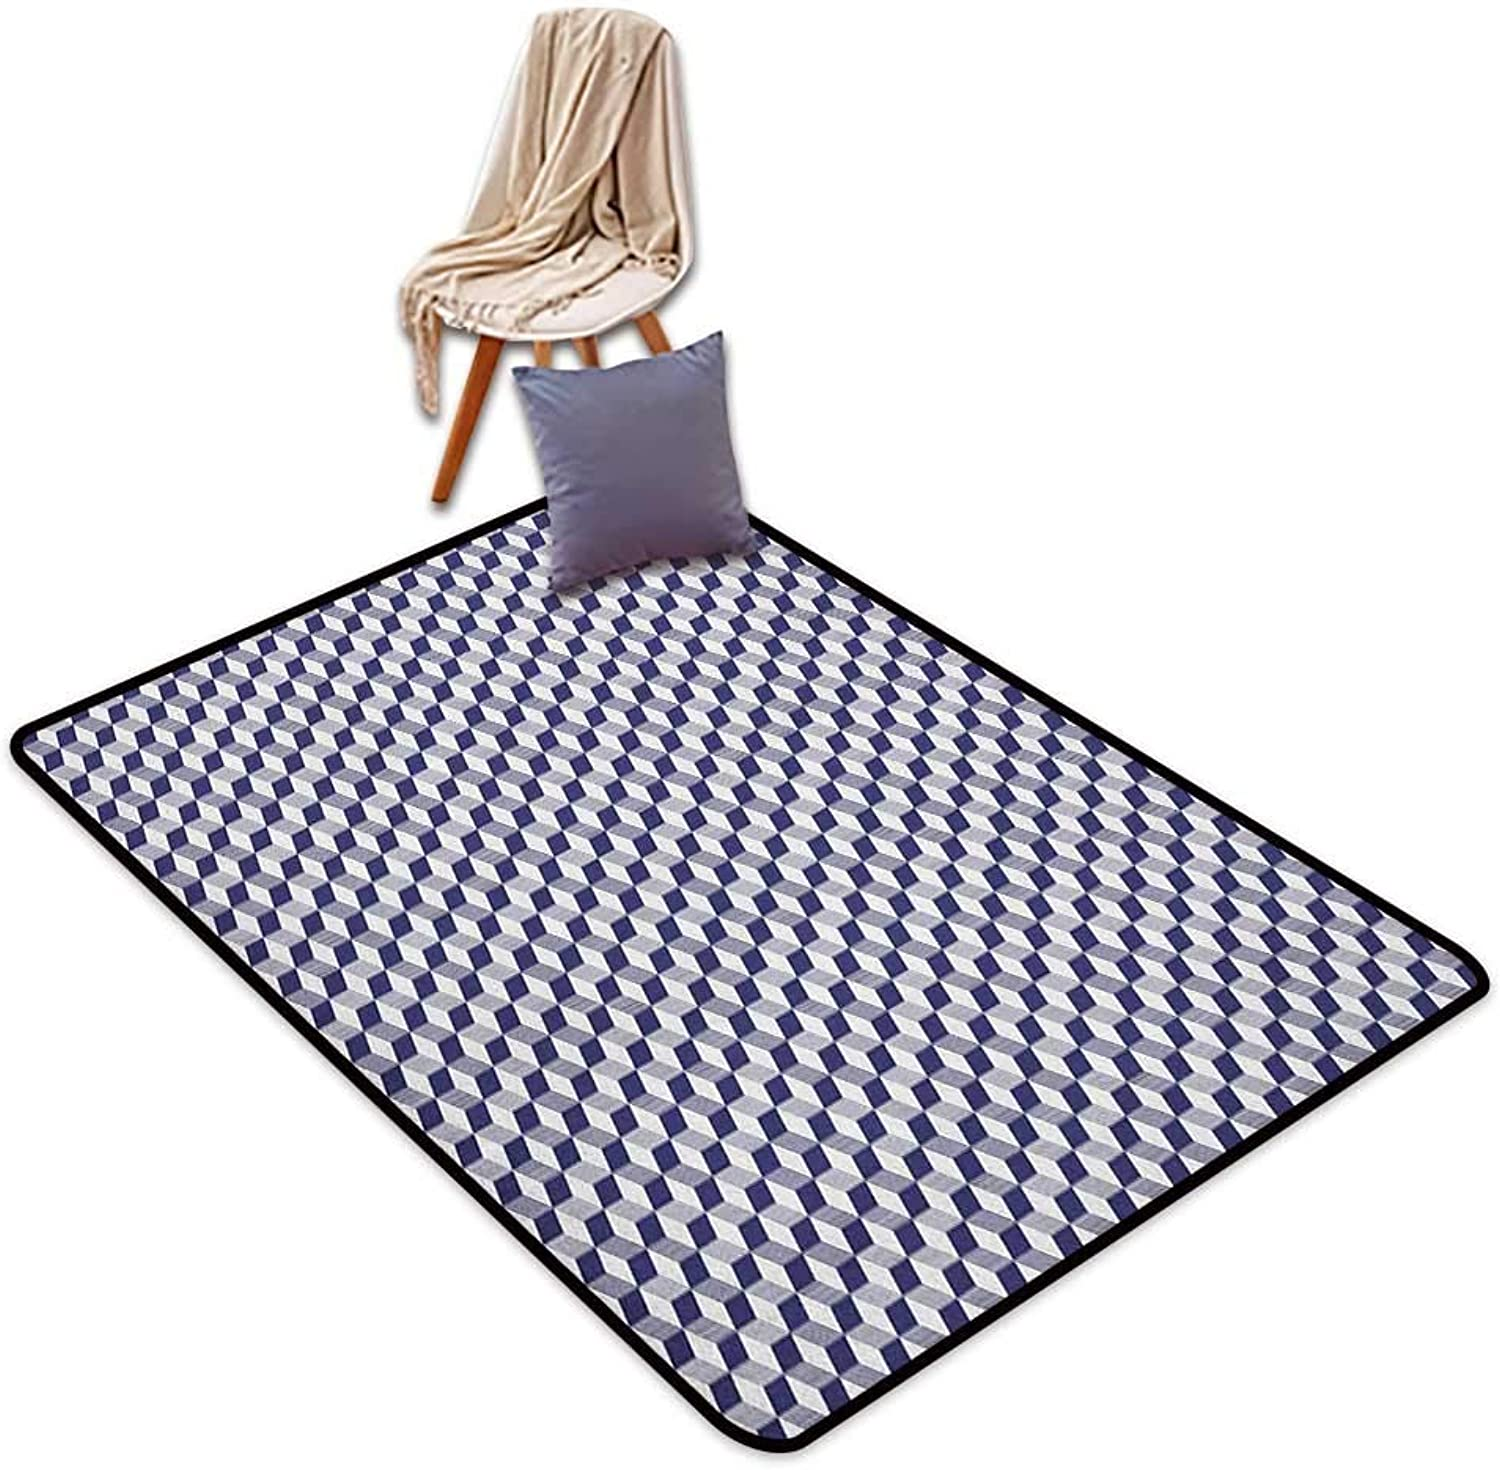 Inner Door Rug Navy bluee Abstract Cube Shape Striped Geometric Three Dimension Pattern Squares and Lines Door Rug Increase W5'xL6'